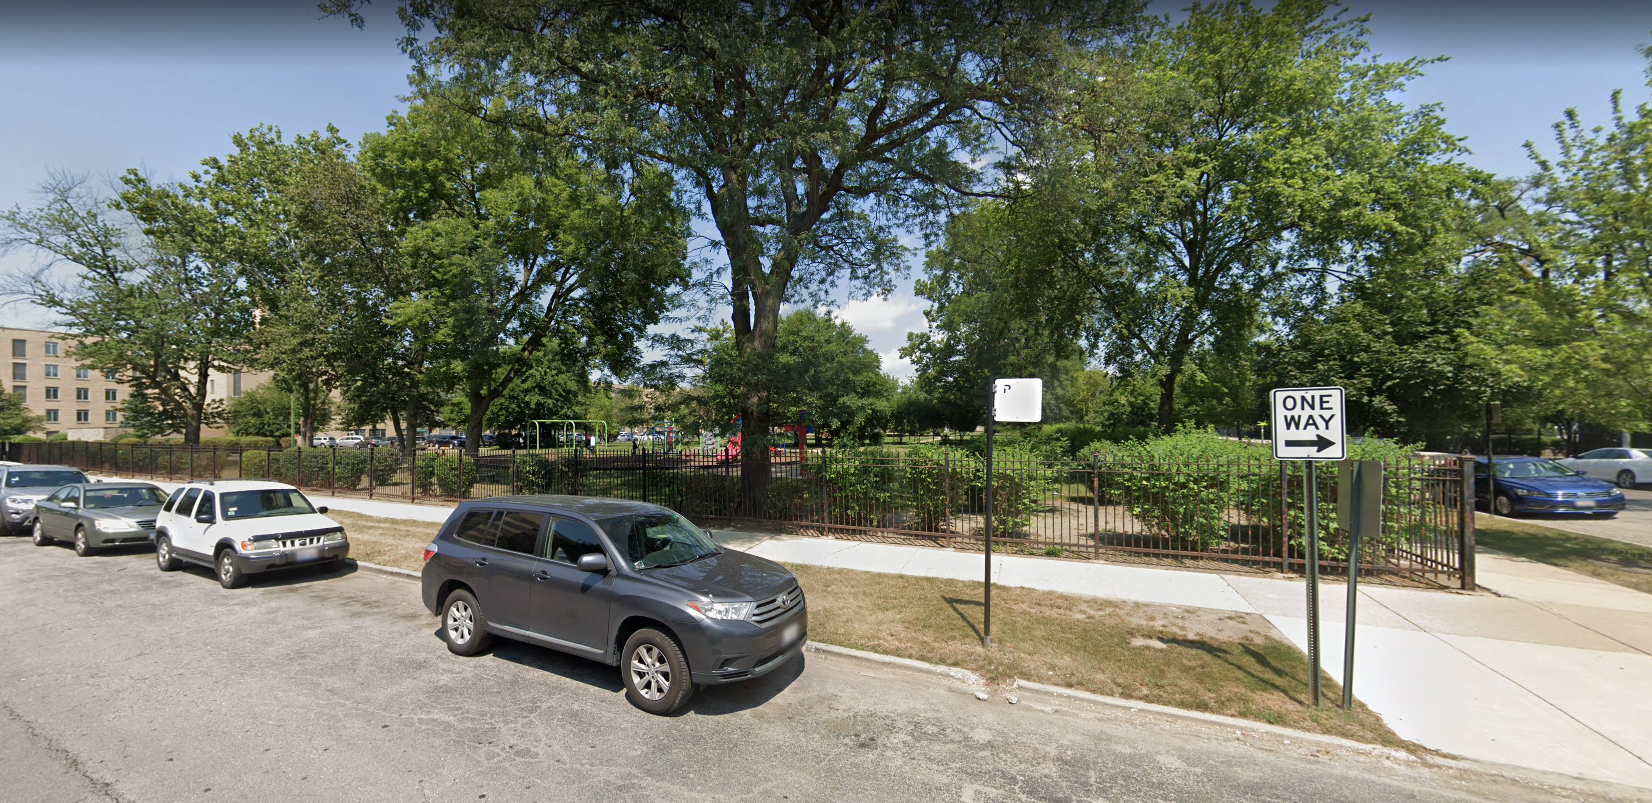 Two people tried luring a boy into their vehicle about 8:10 a.m. Nov. 22, 2019 in Marquette Park.